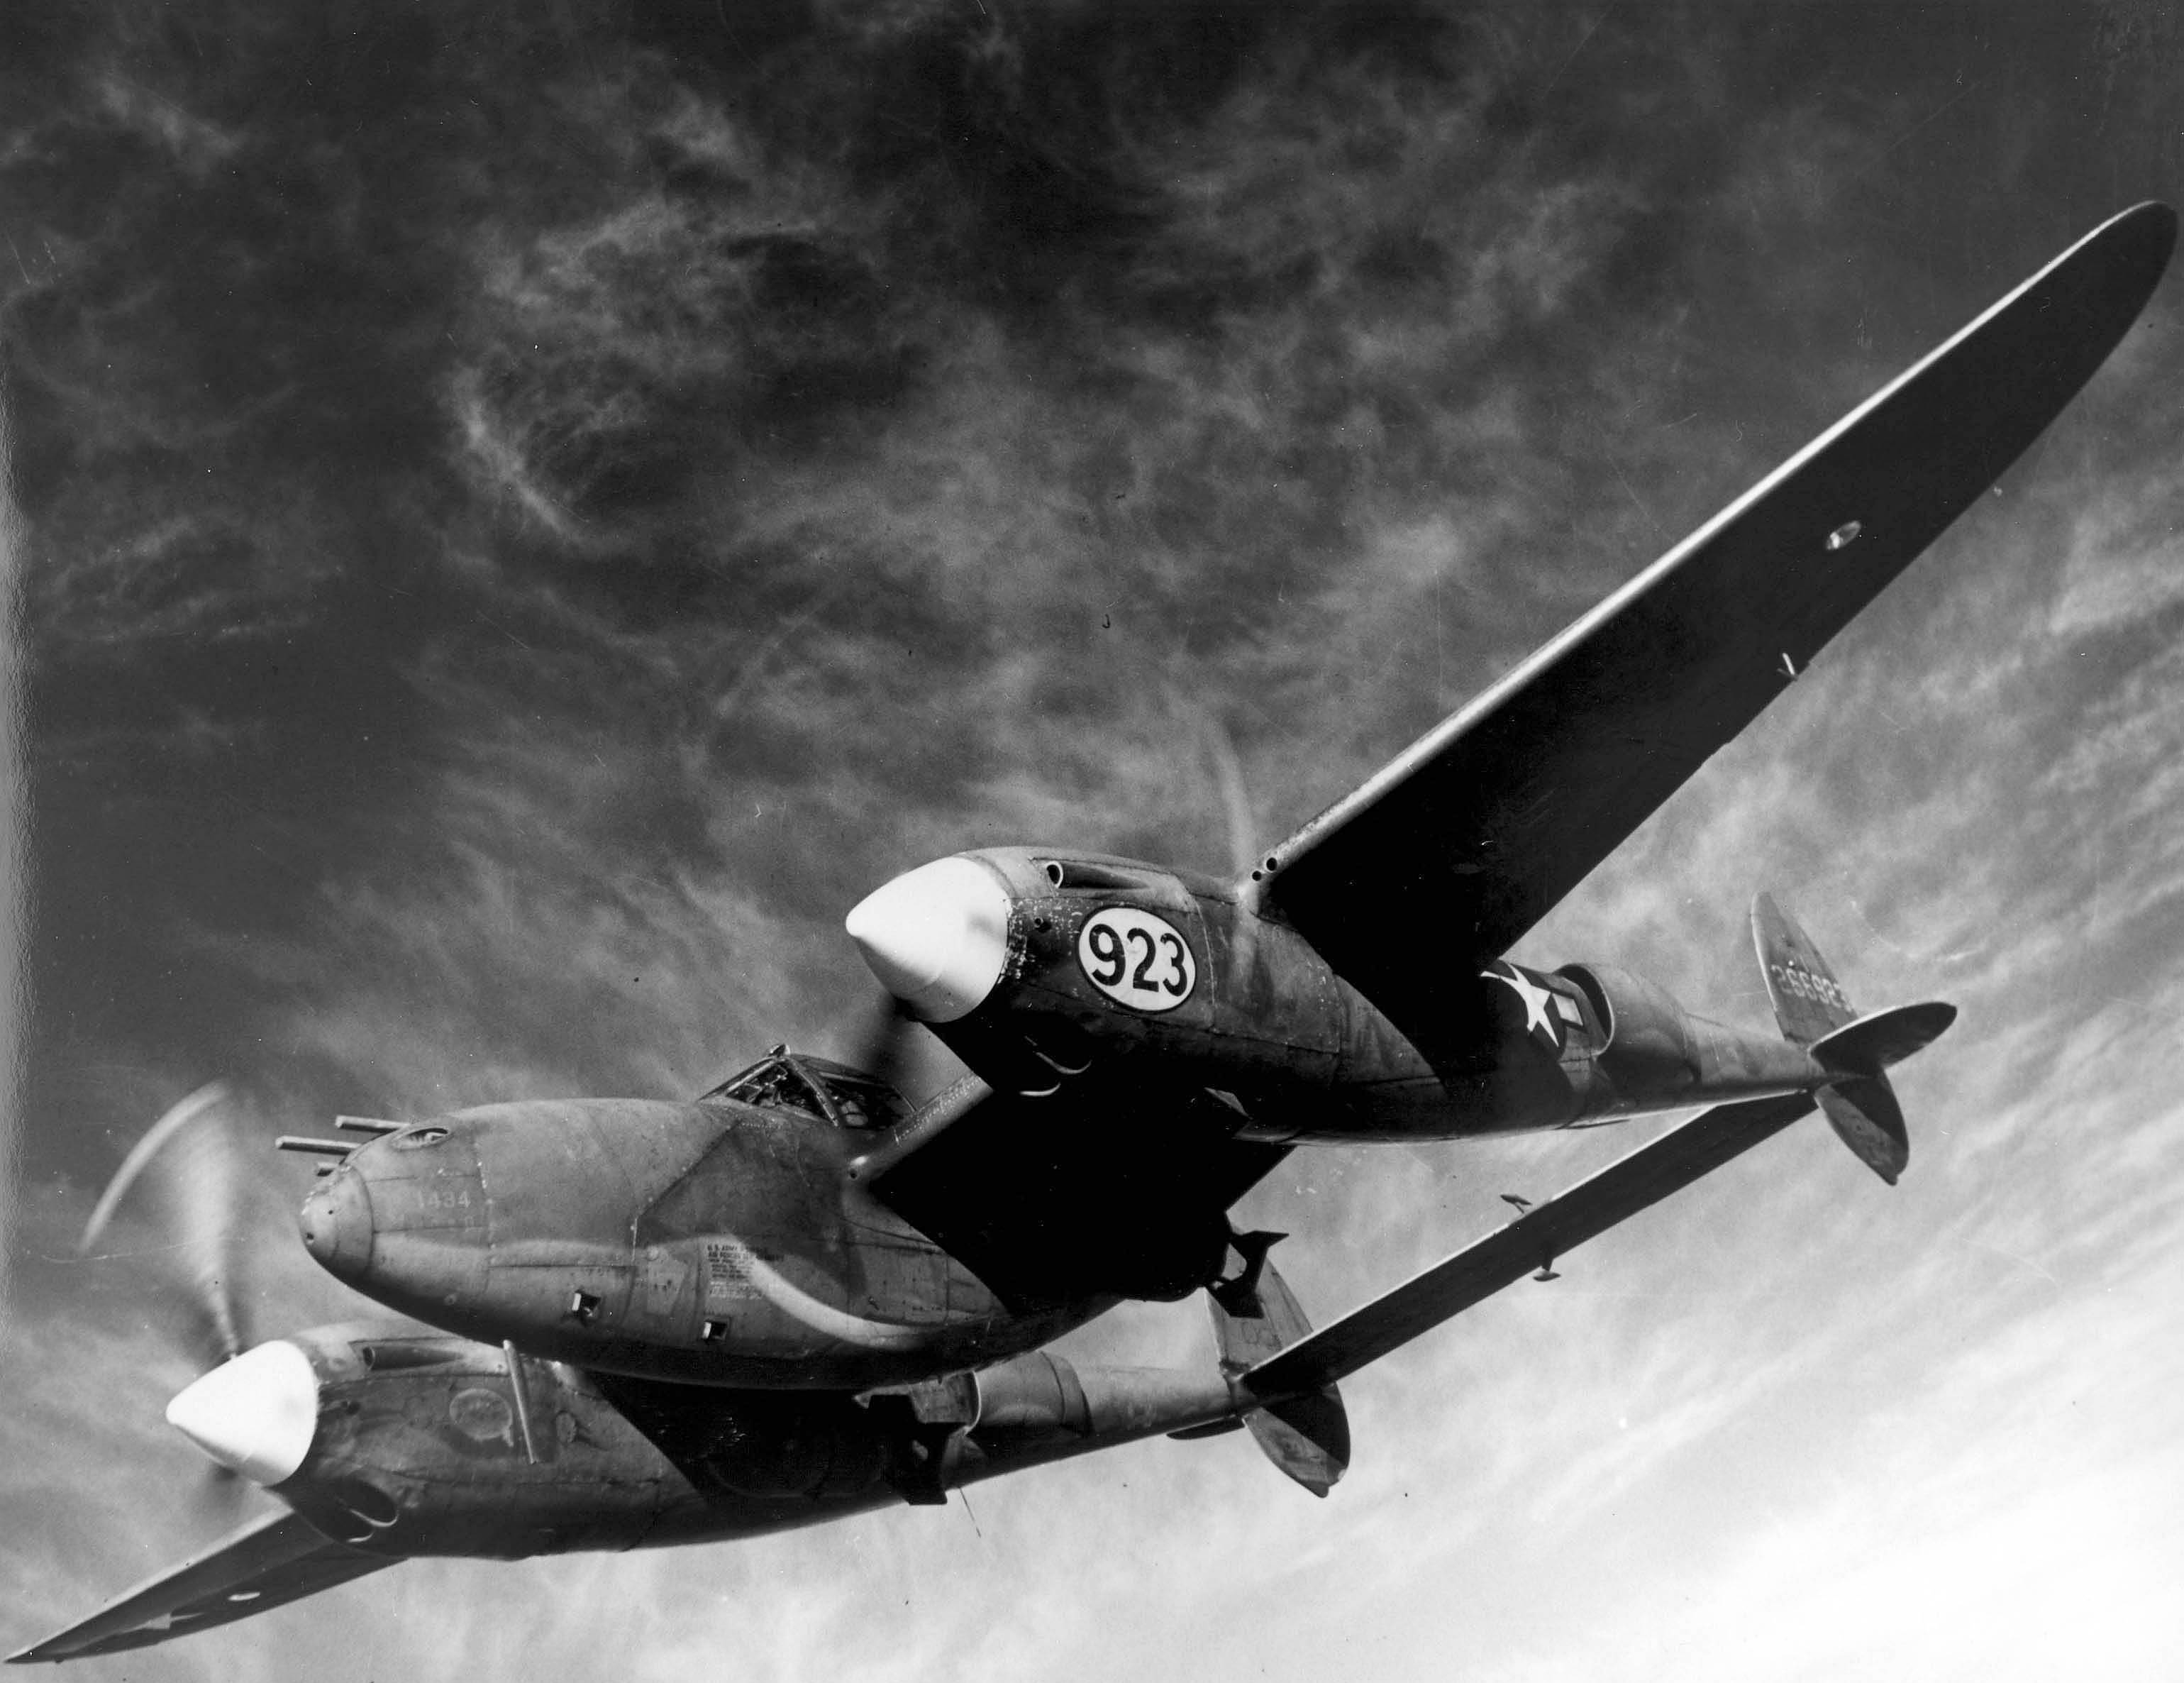 Orlando, Fla. - Barely visible beneath the wings of a Lockhead P-38 Lighting are the deadly bombs with which this multi-purpose plane can blast enemy troops, ships and gun emplacements.  As shown in recent demonstartions at the AAF Tactical Center, Orlando, Fla., the Lockhead P-38, now being used as a fighter-bomber, is capable of carrying bomb pay loads up to 2,000 pounds, thus affording the Allies another potent weapon for use against Germany and Japan in coming offensive.